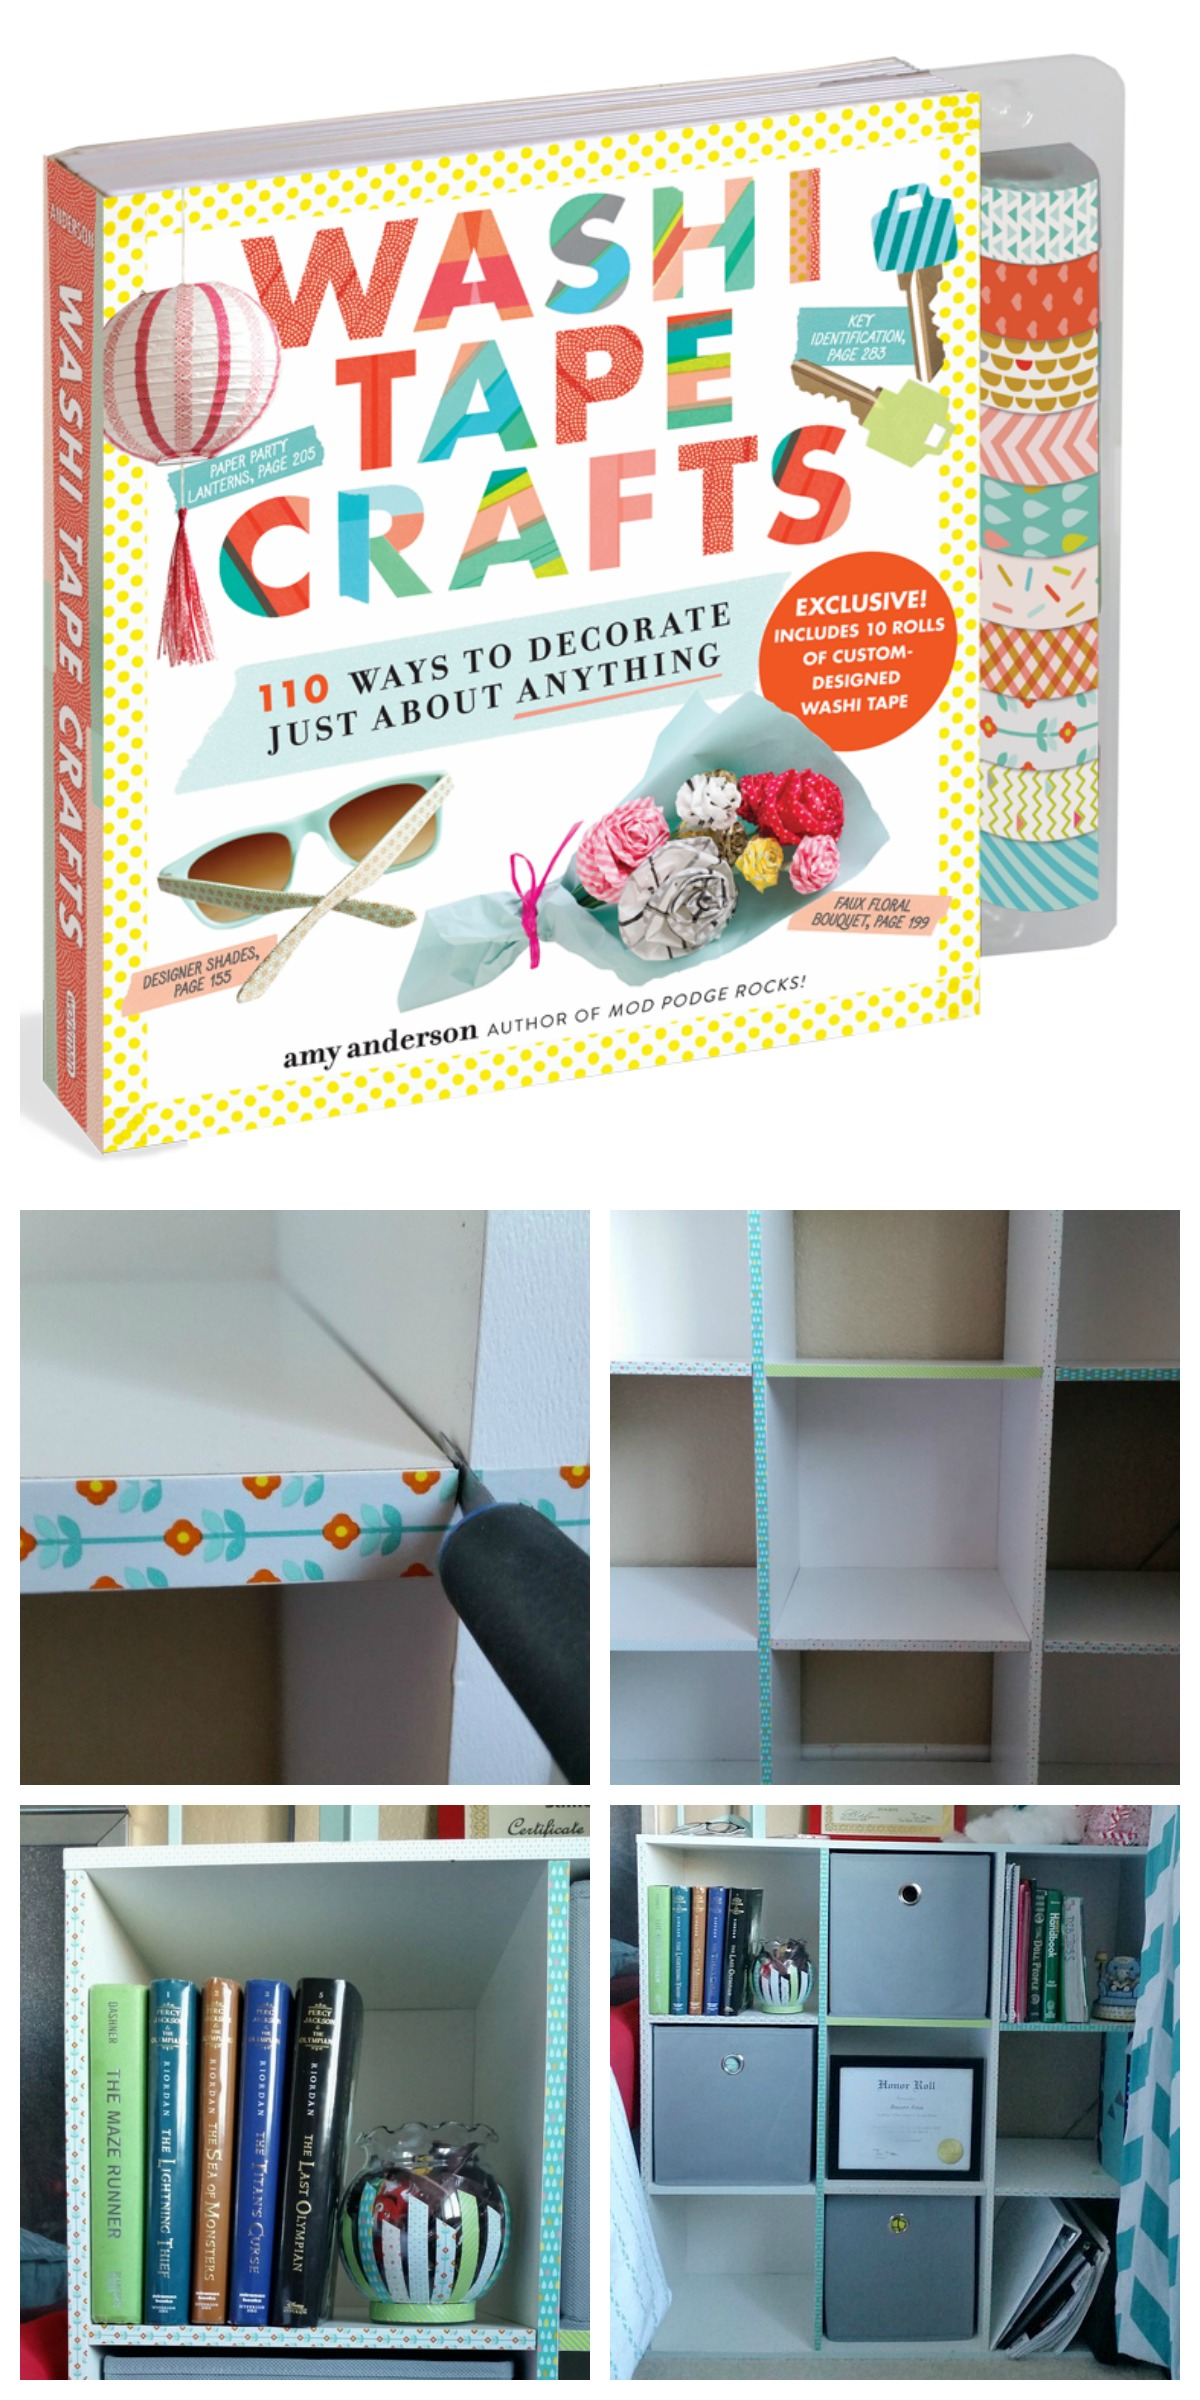 Washi Tape Crafts Review Cube Shelf Makeover My